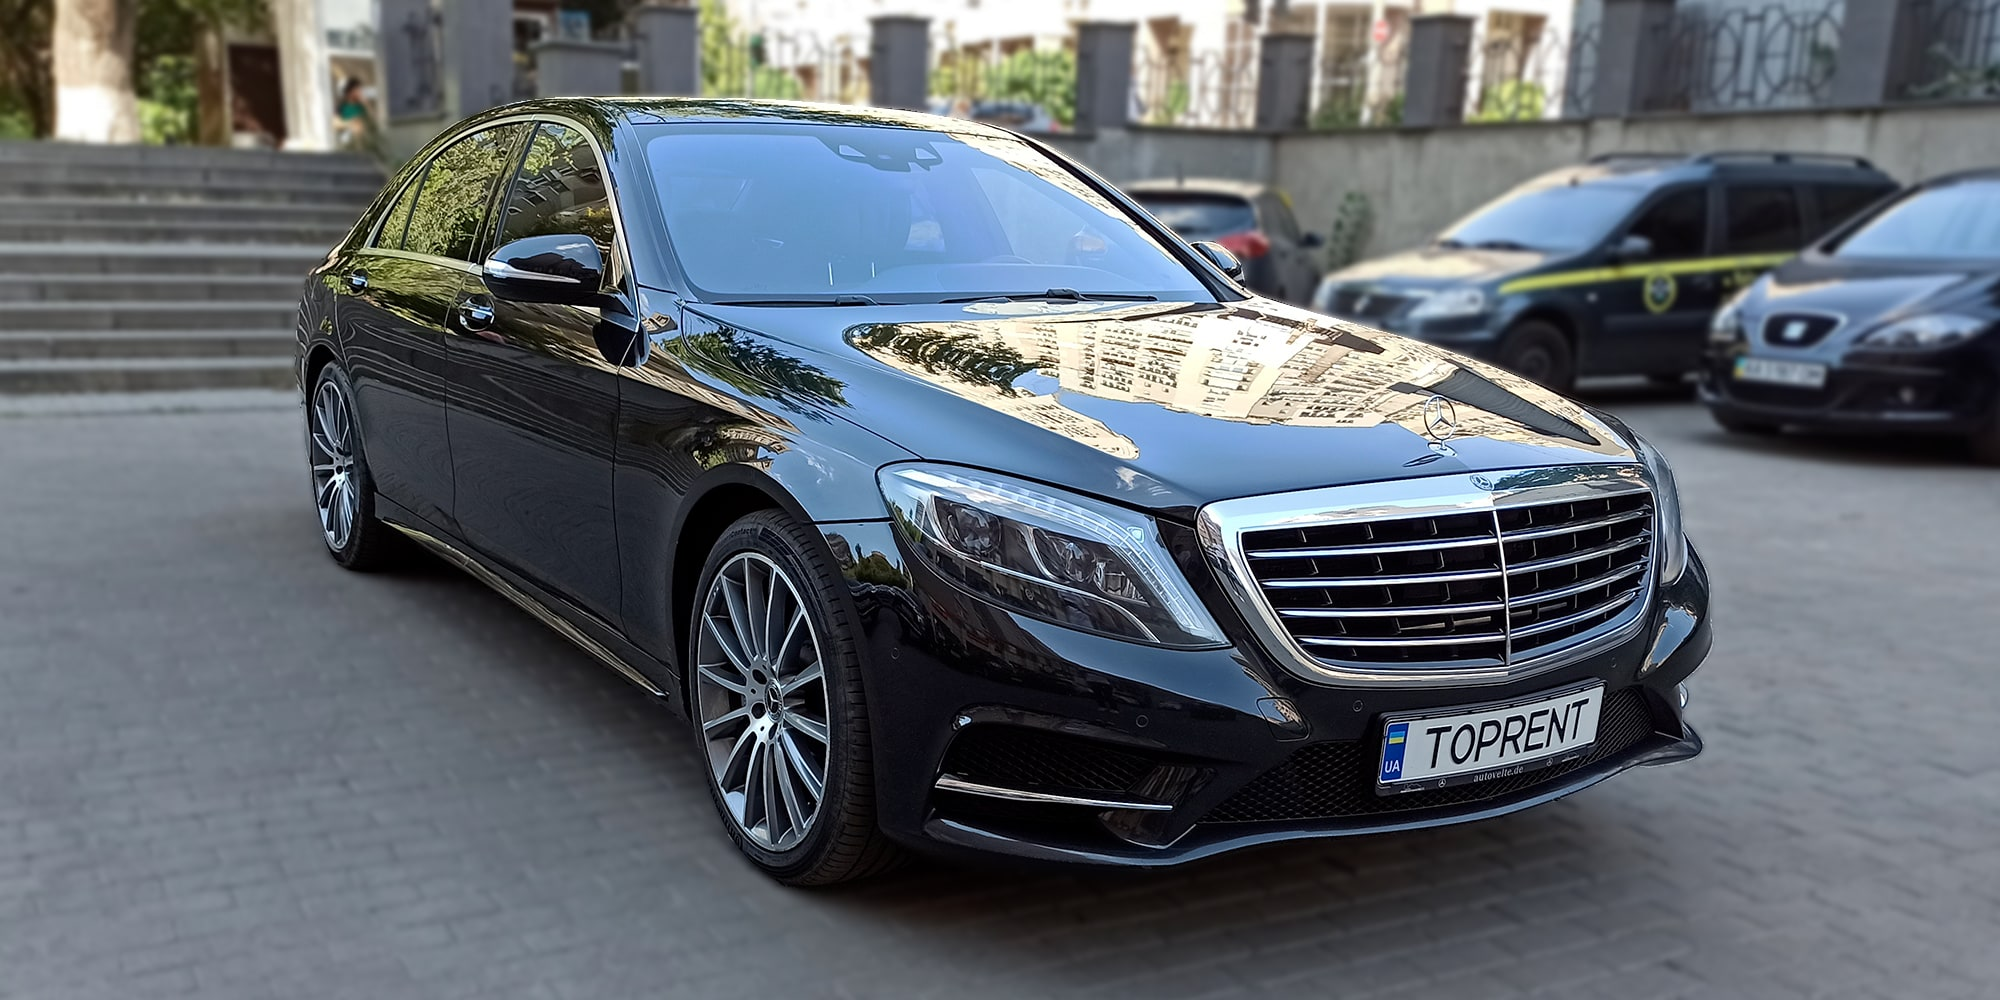 Прокат и аренда авто Mercedes-Benz S550 4matic (w222) - фото 2 | TOPrent.ua